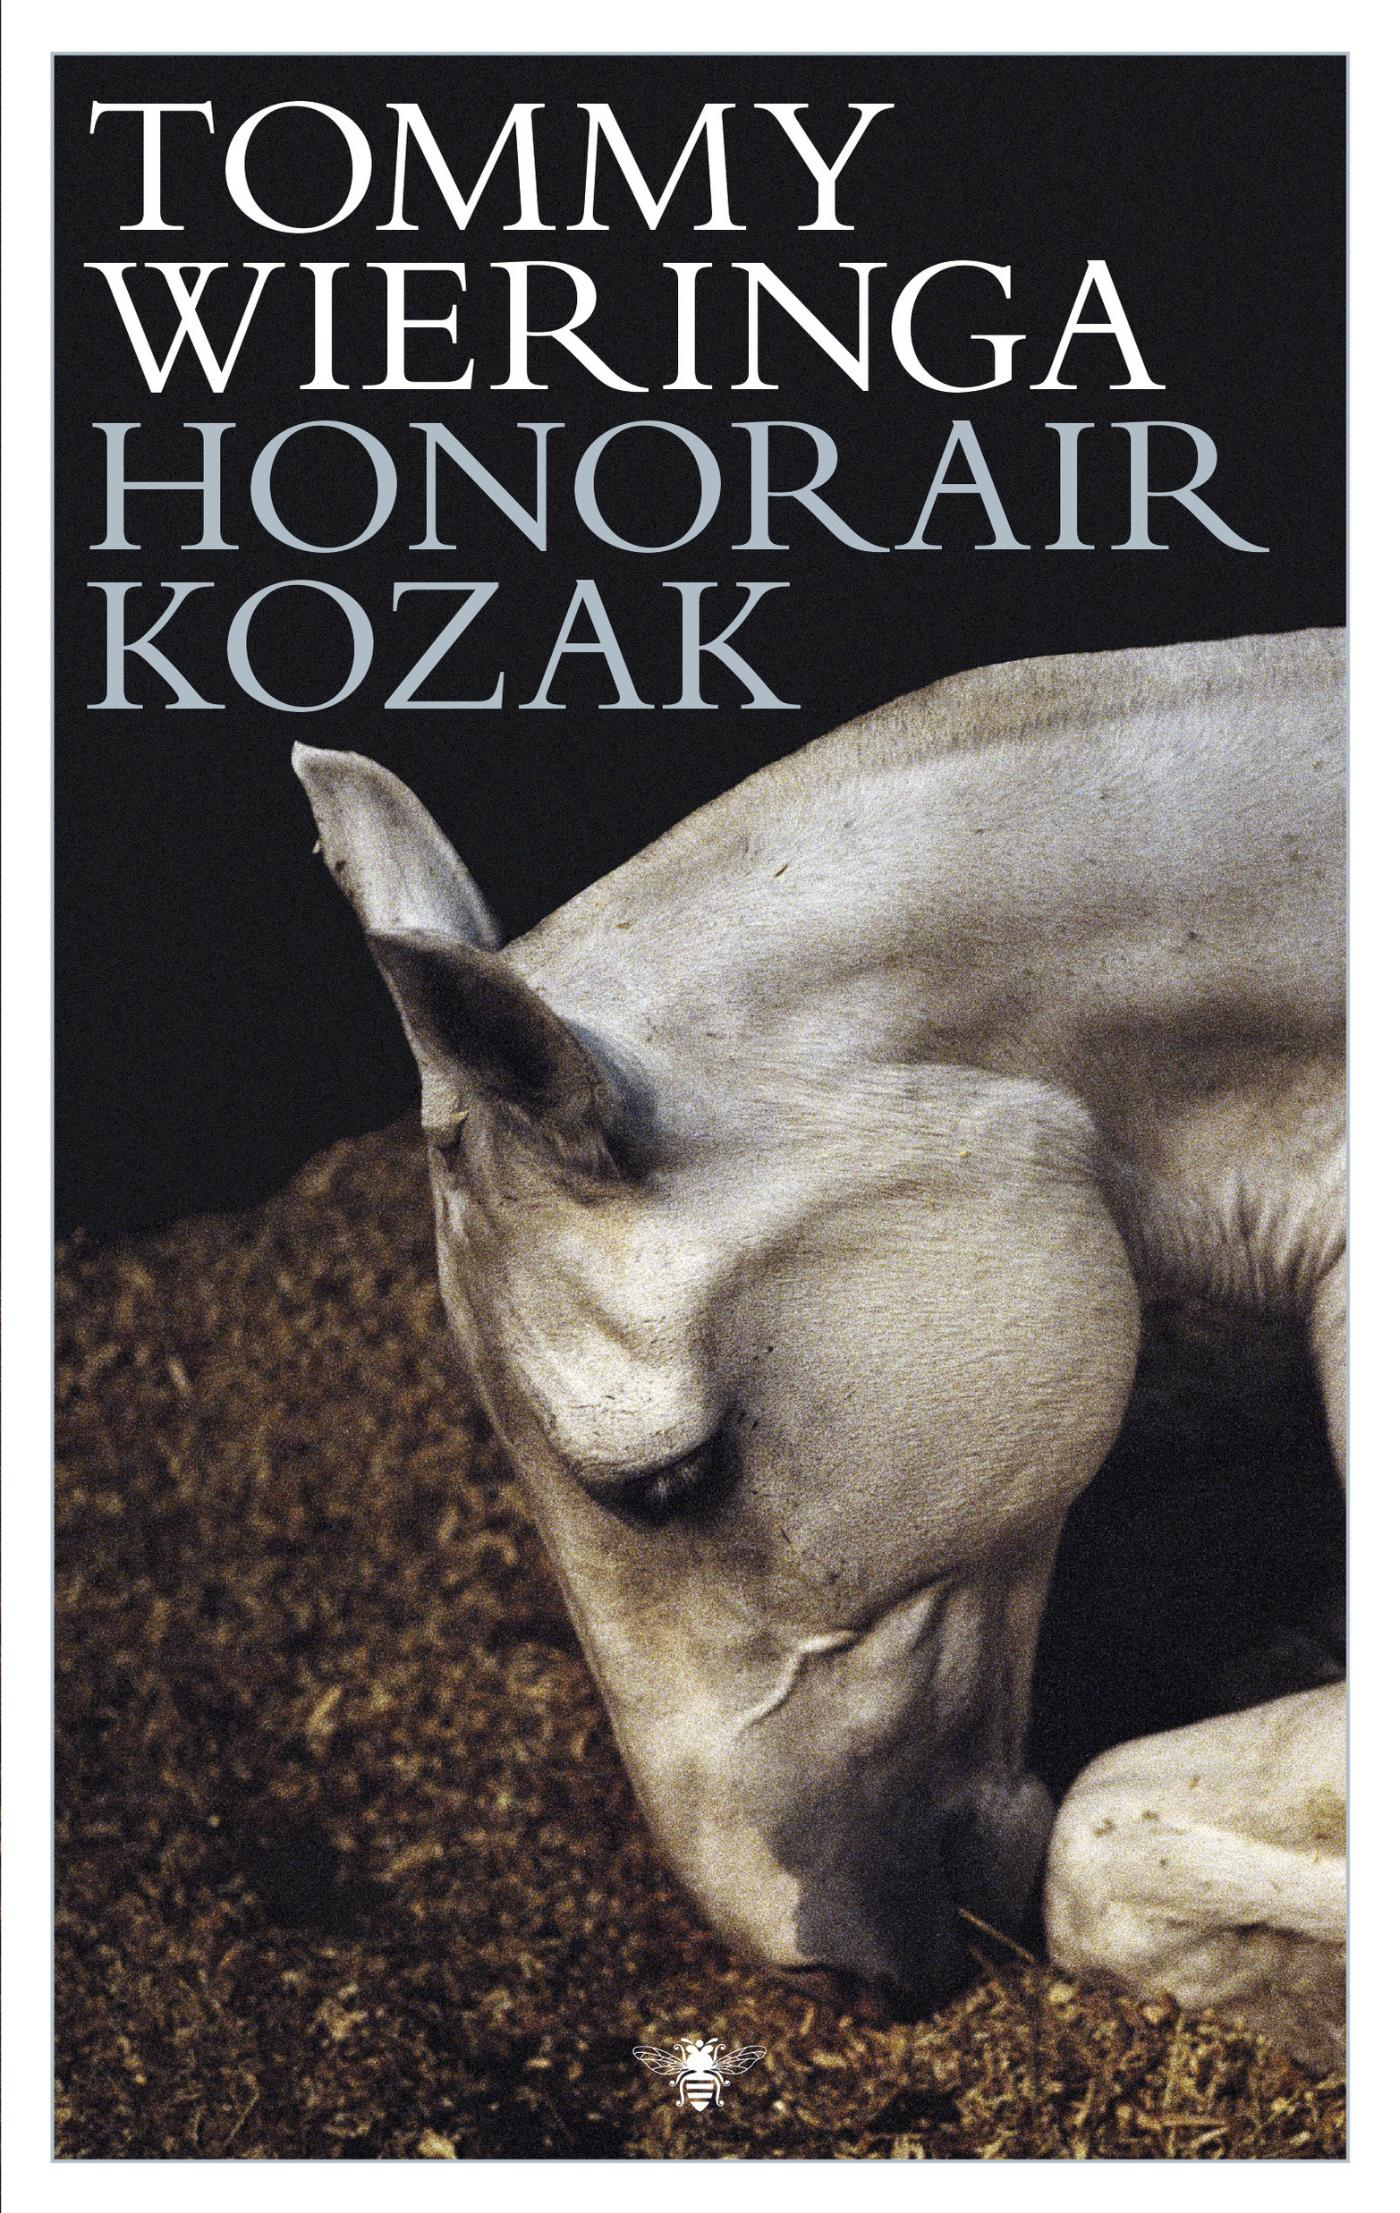 Honorair kozak | Tommy Wieringa | 9789023488941